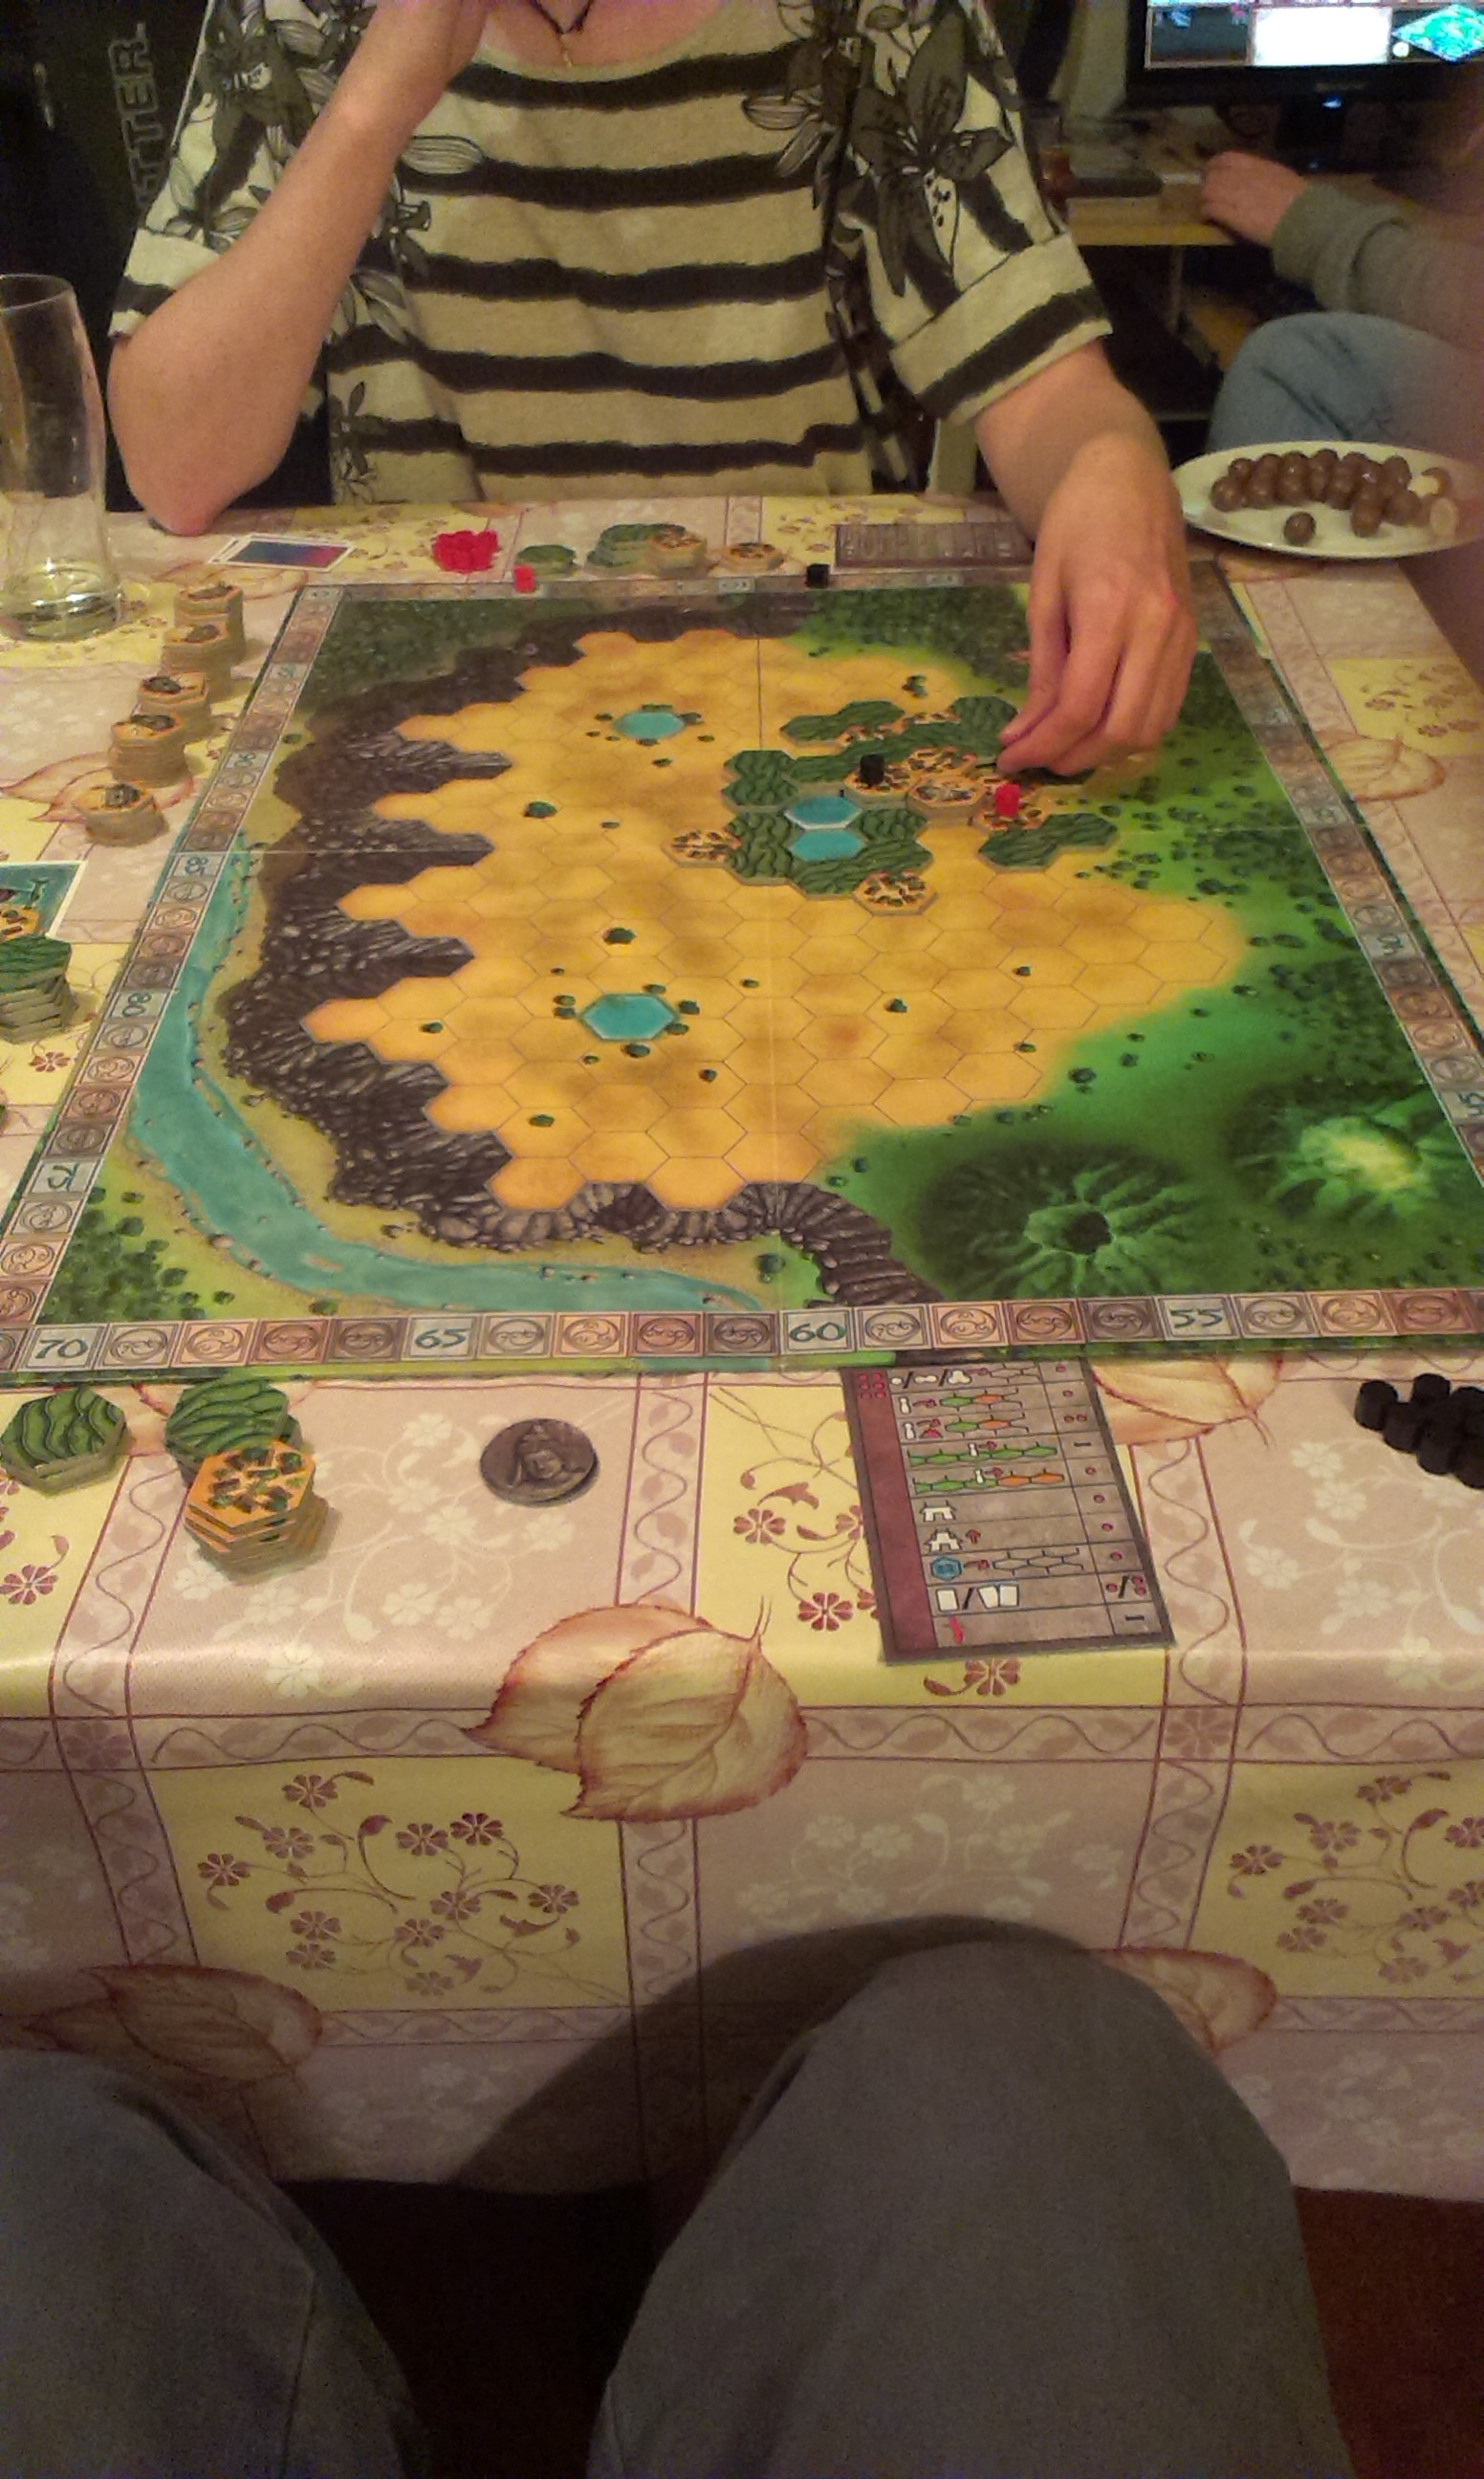 Java tame the board game the game in essence can be seen as a strategic planning game your aim is to take control of the island of java through building cities and enlarging them solutioingenieria Images